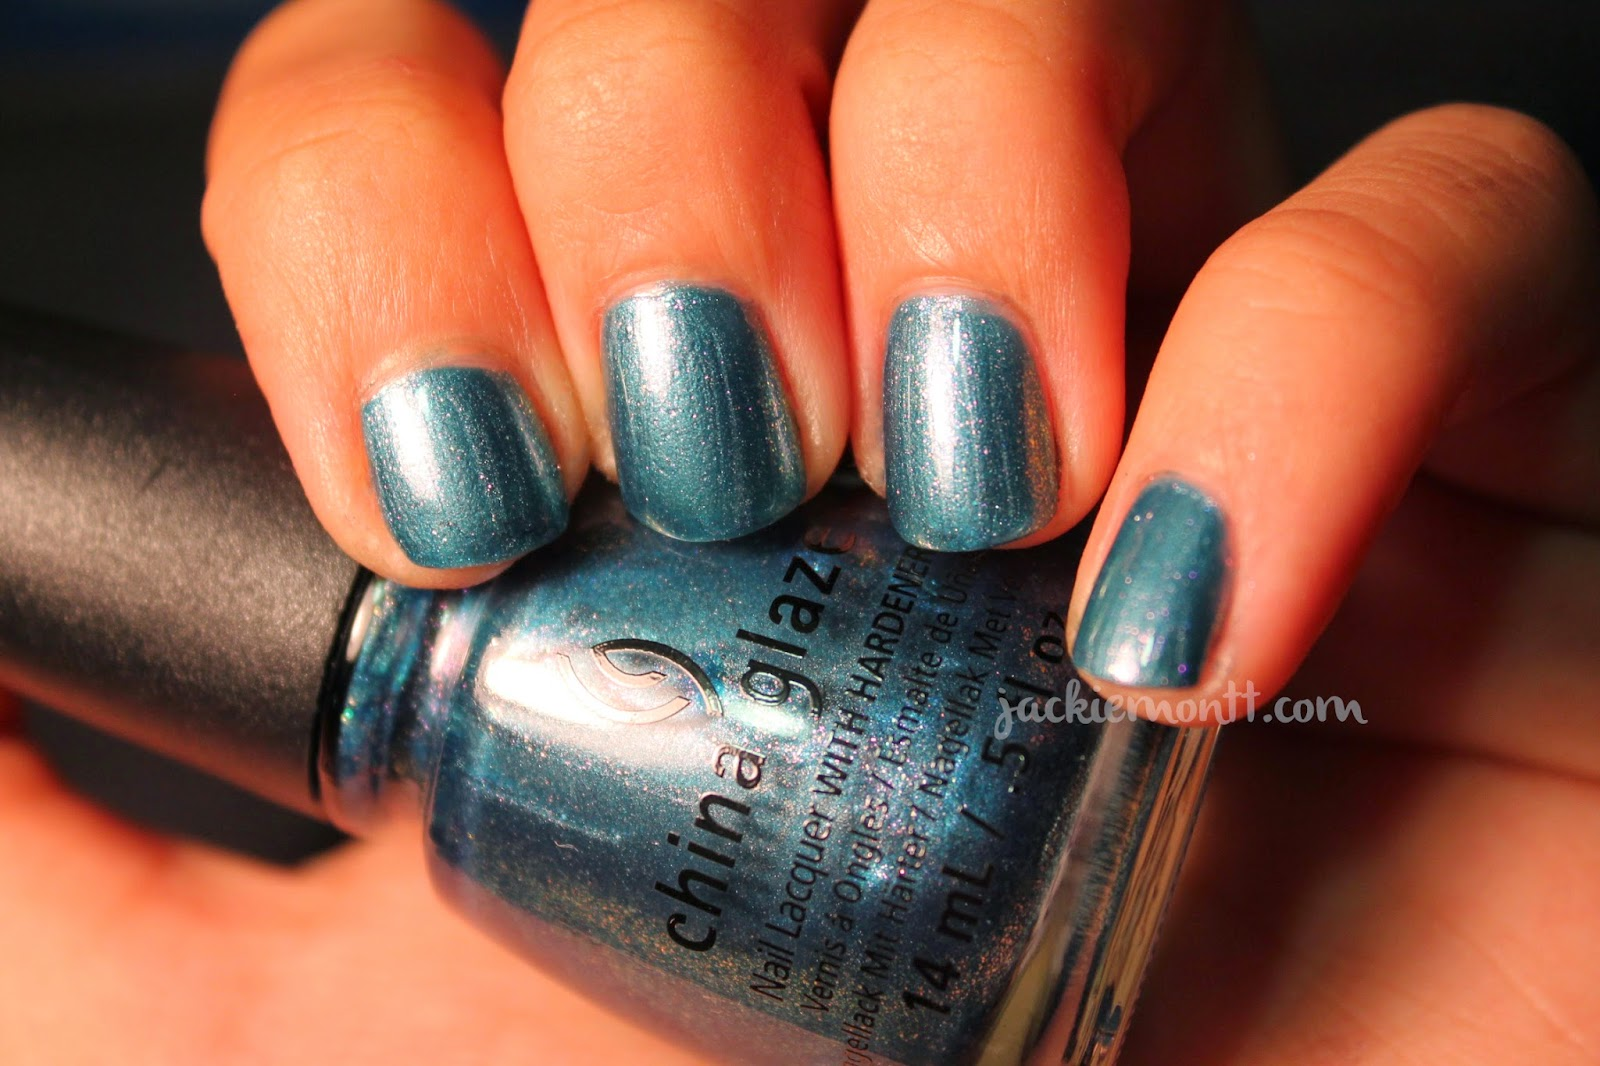 China Glaze Winter 2014: Twinkle Collection Part 1 - JACKIEMONTT